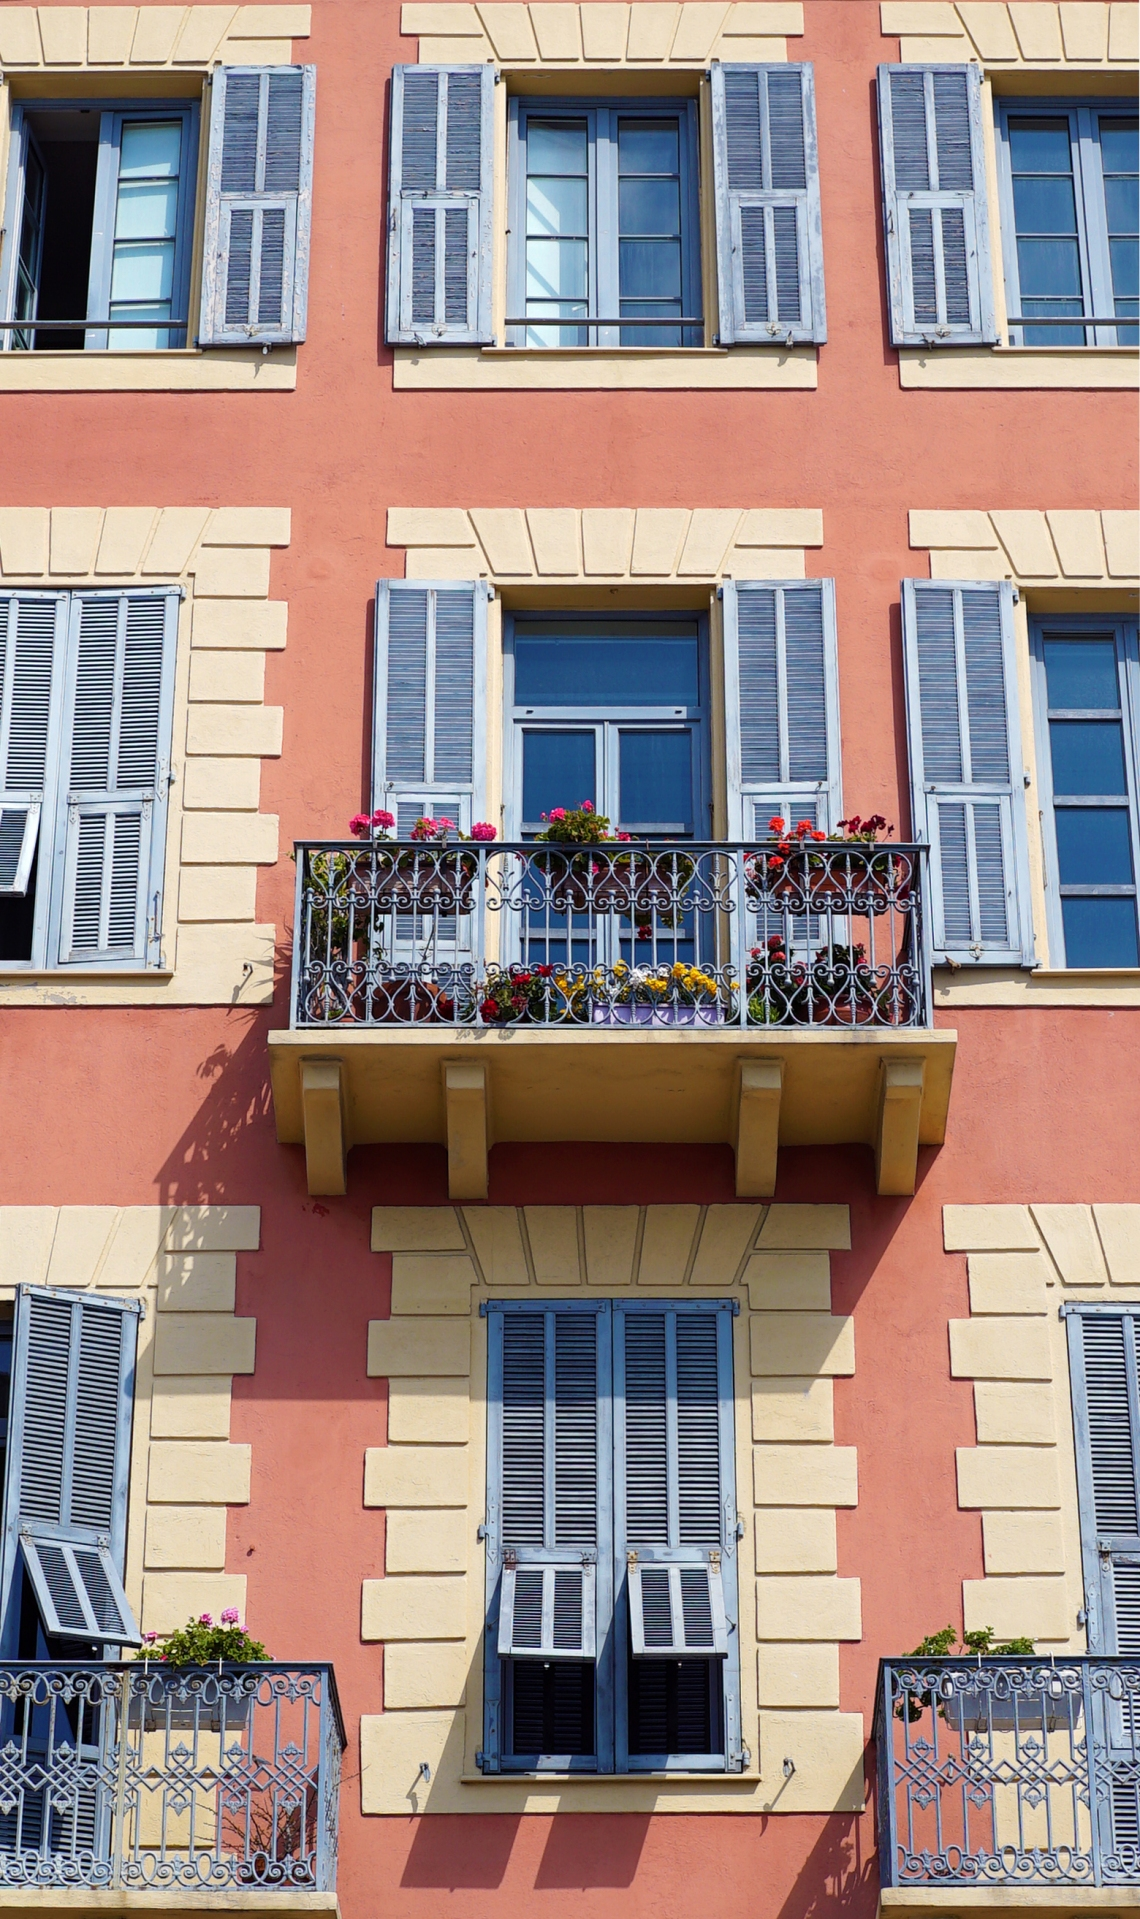 Balcony flowers pink building